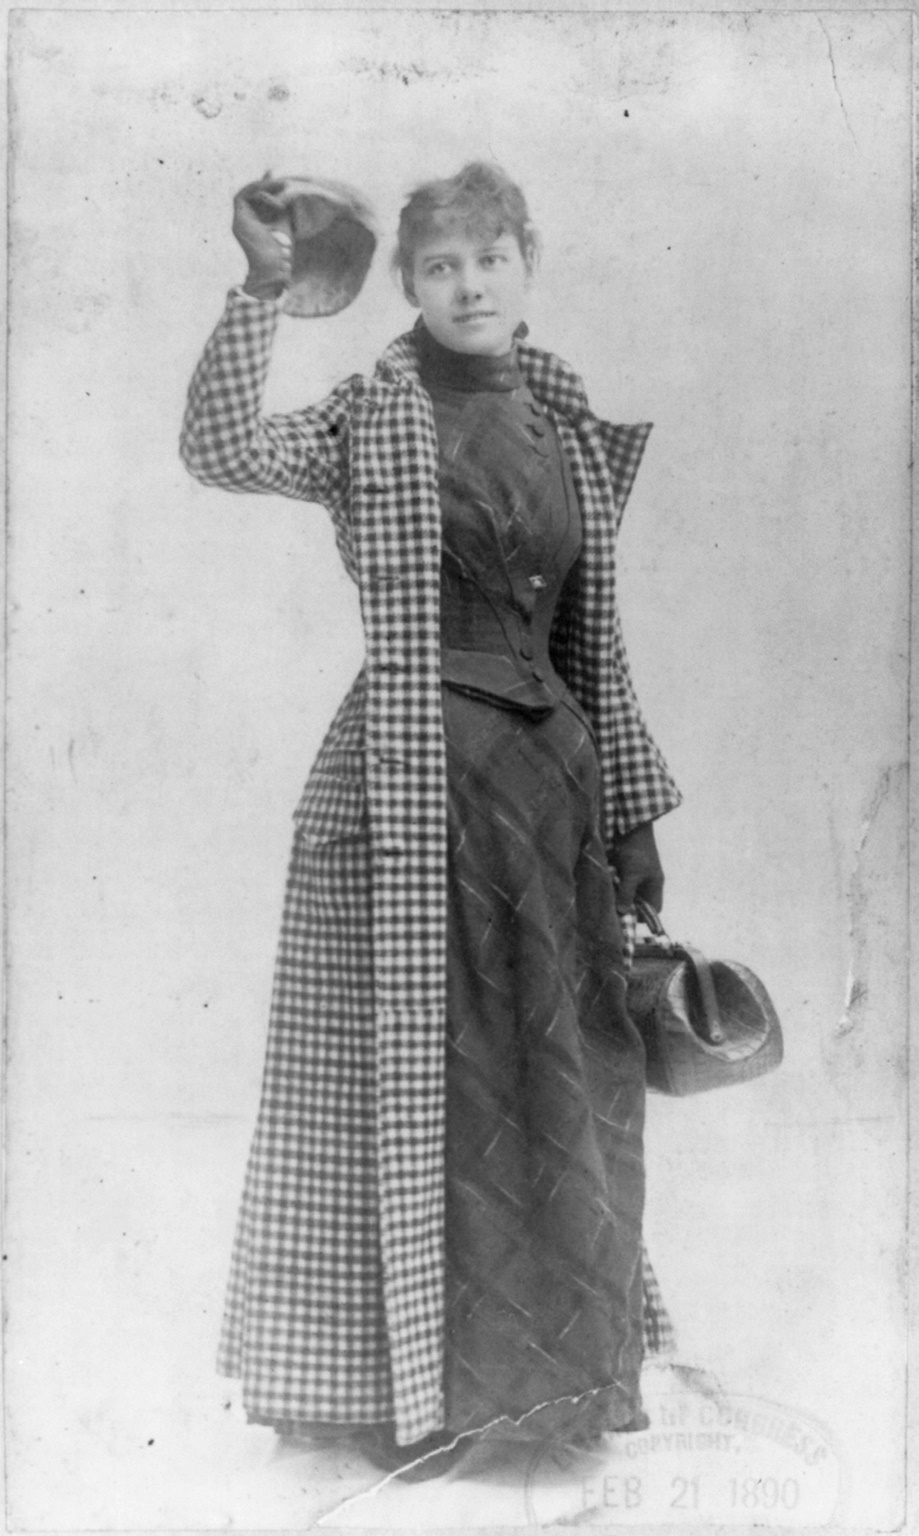 Nellie Bly in her legendary travel attire with her dress visible